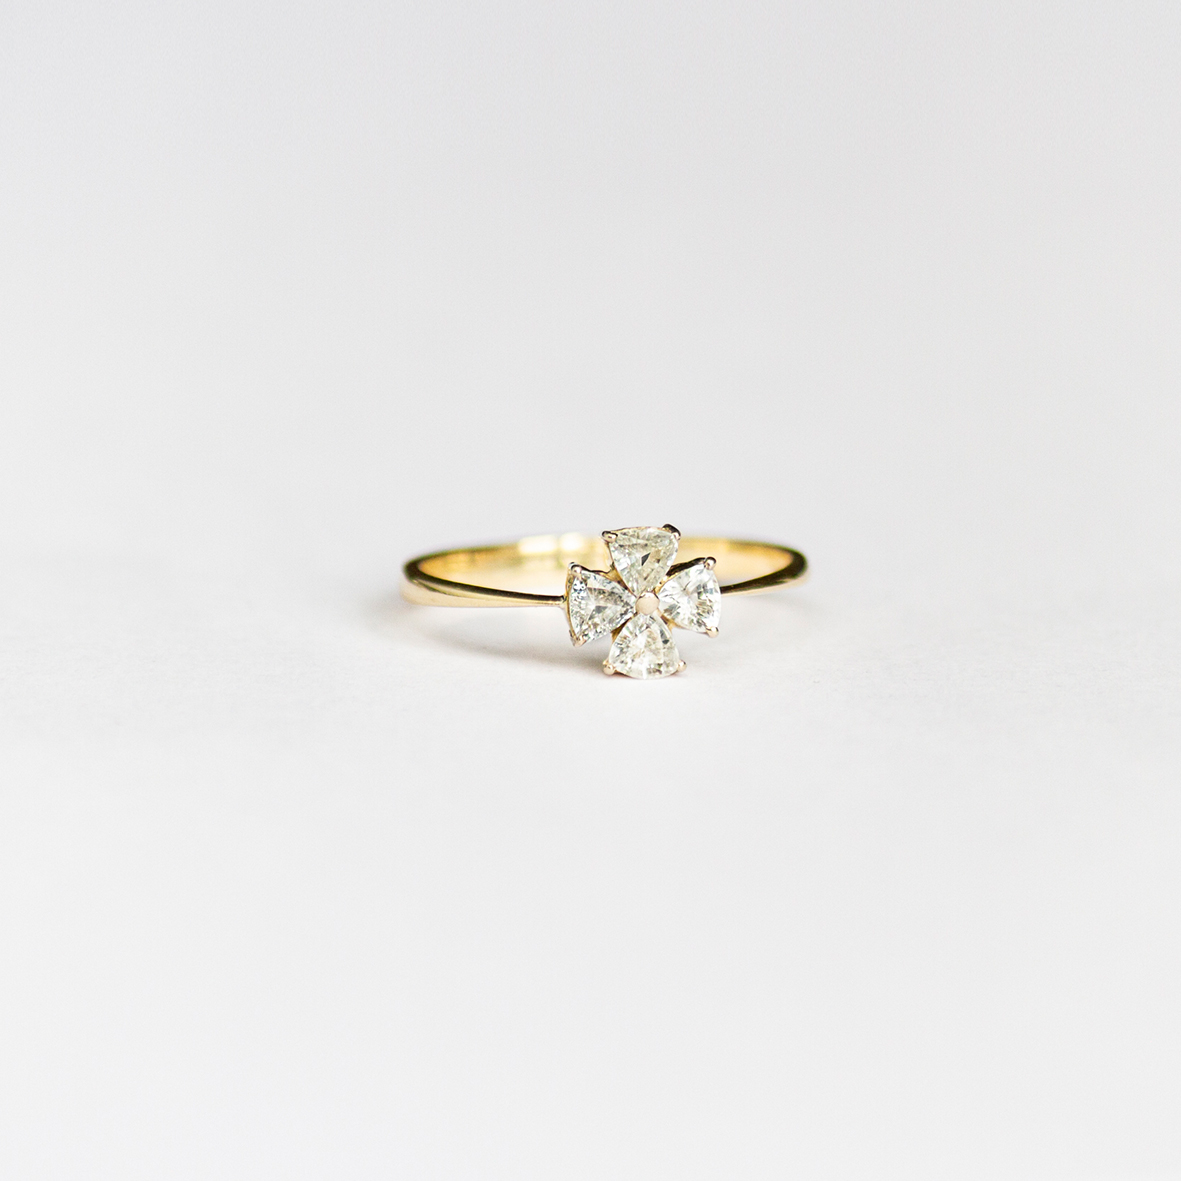 2. OONA_engagement_ficha1_sapphire clover ring